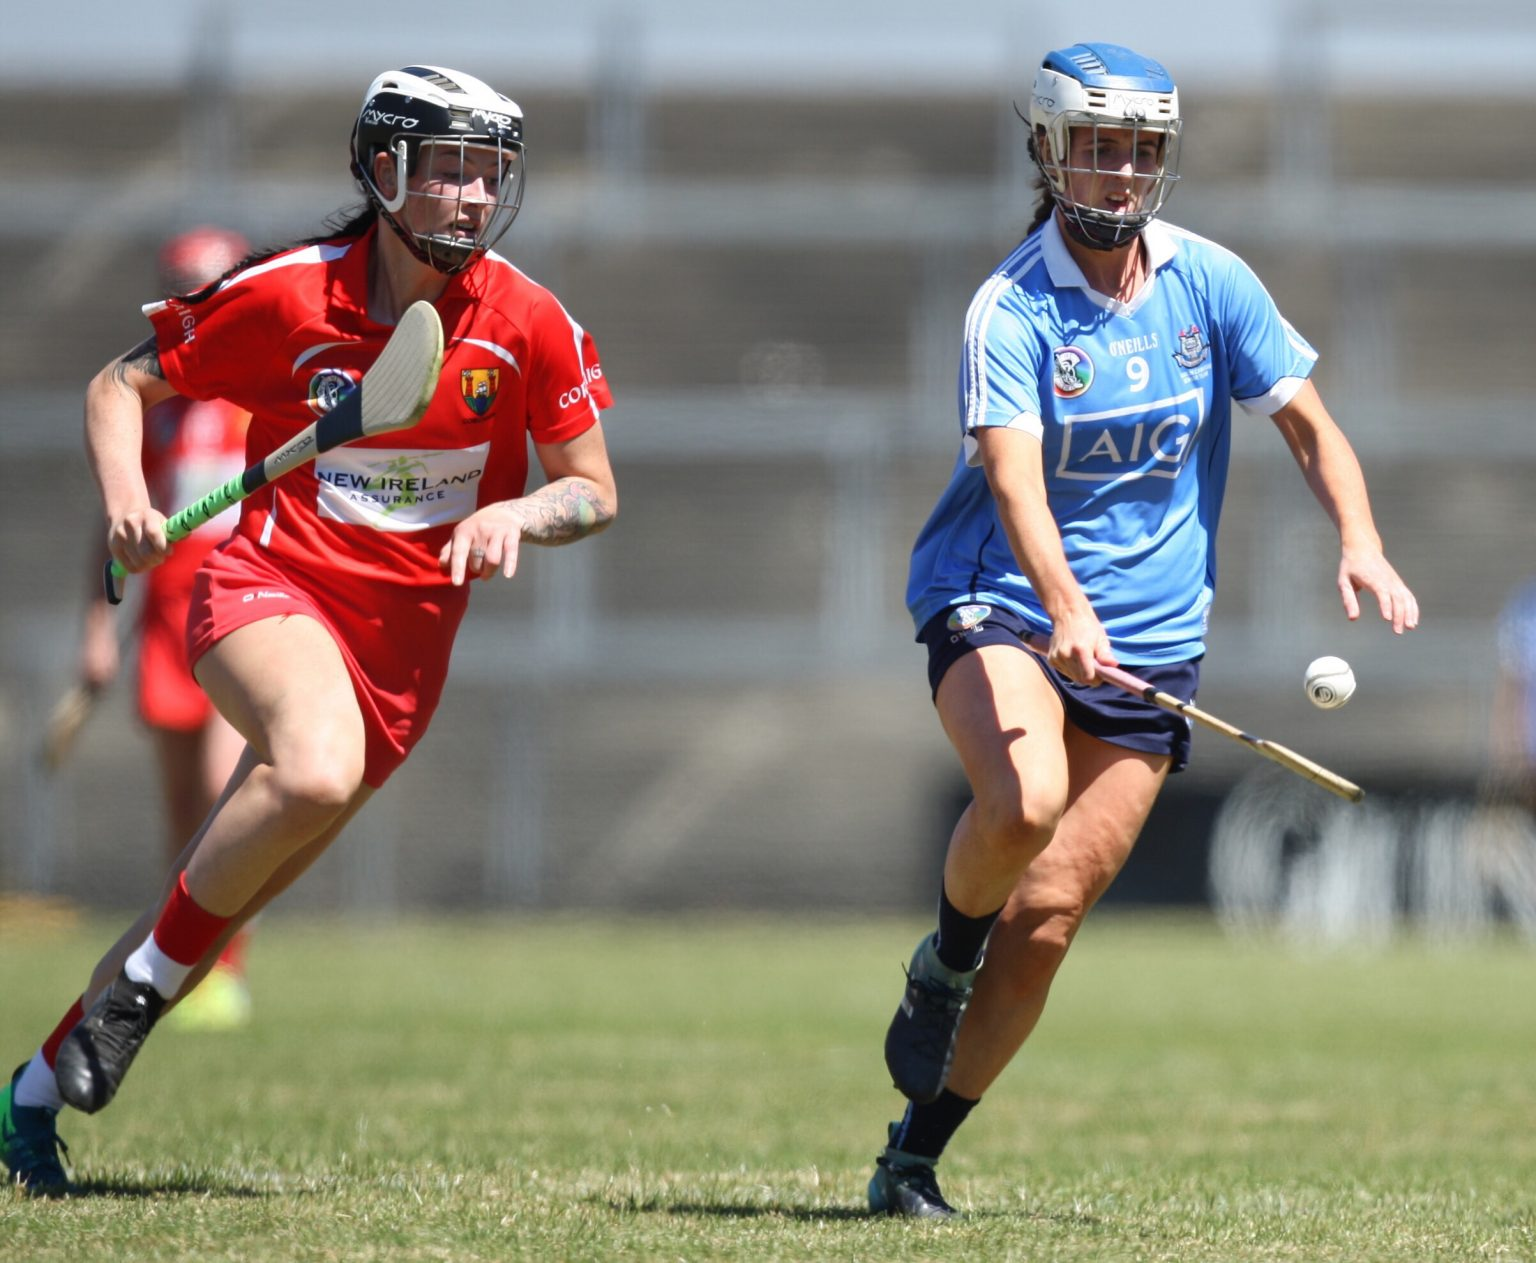 Dublin Camogie player in a sky blue jersey and navy skort bounces the ball on her hurl as she breaks away from a Cork player in red jersey